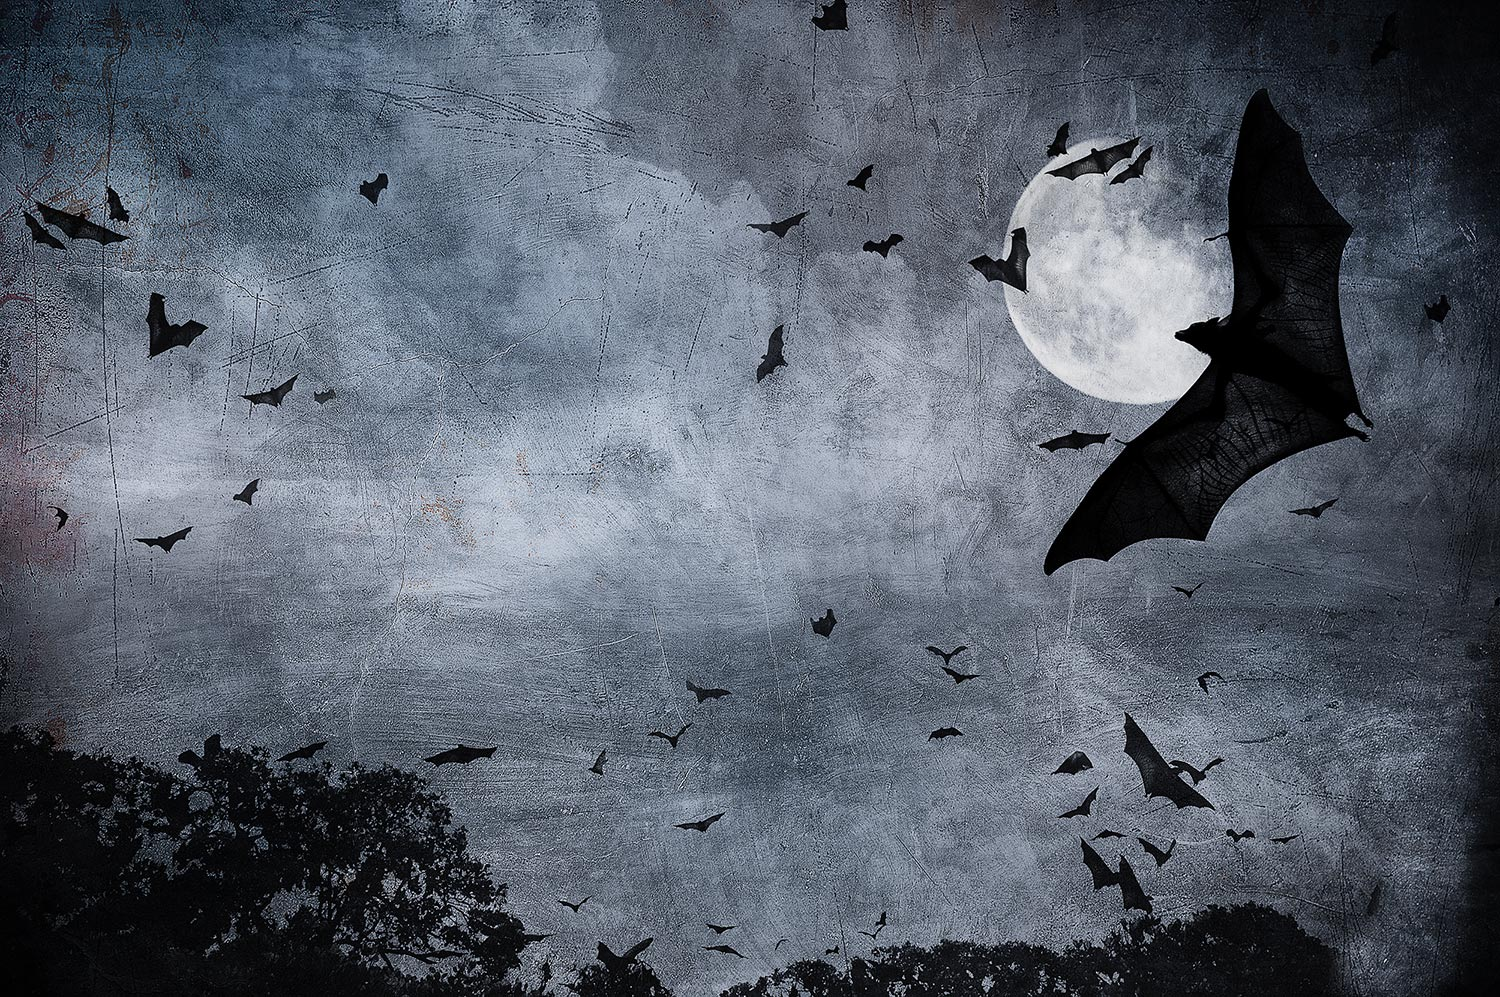 bat illustration night moon